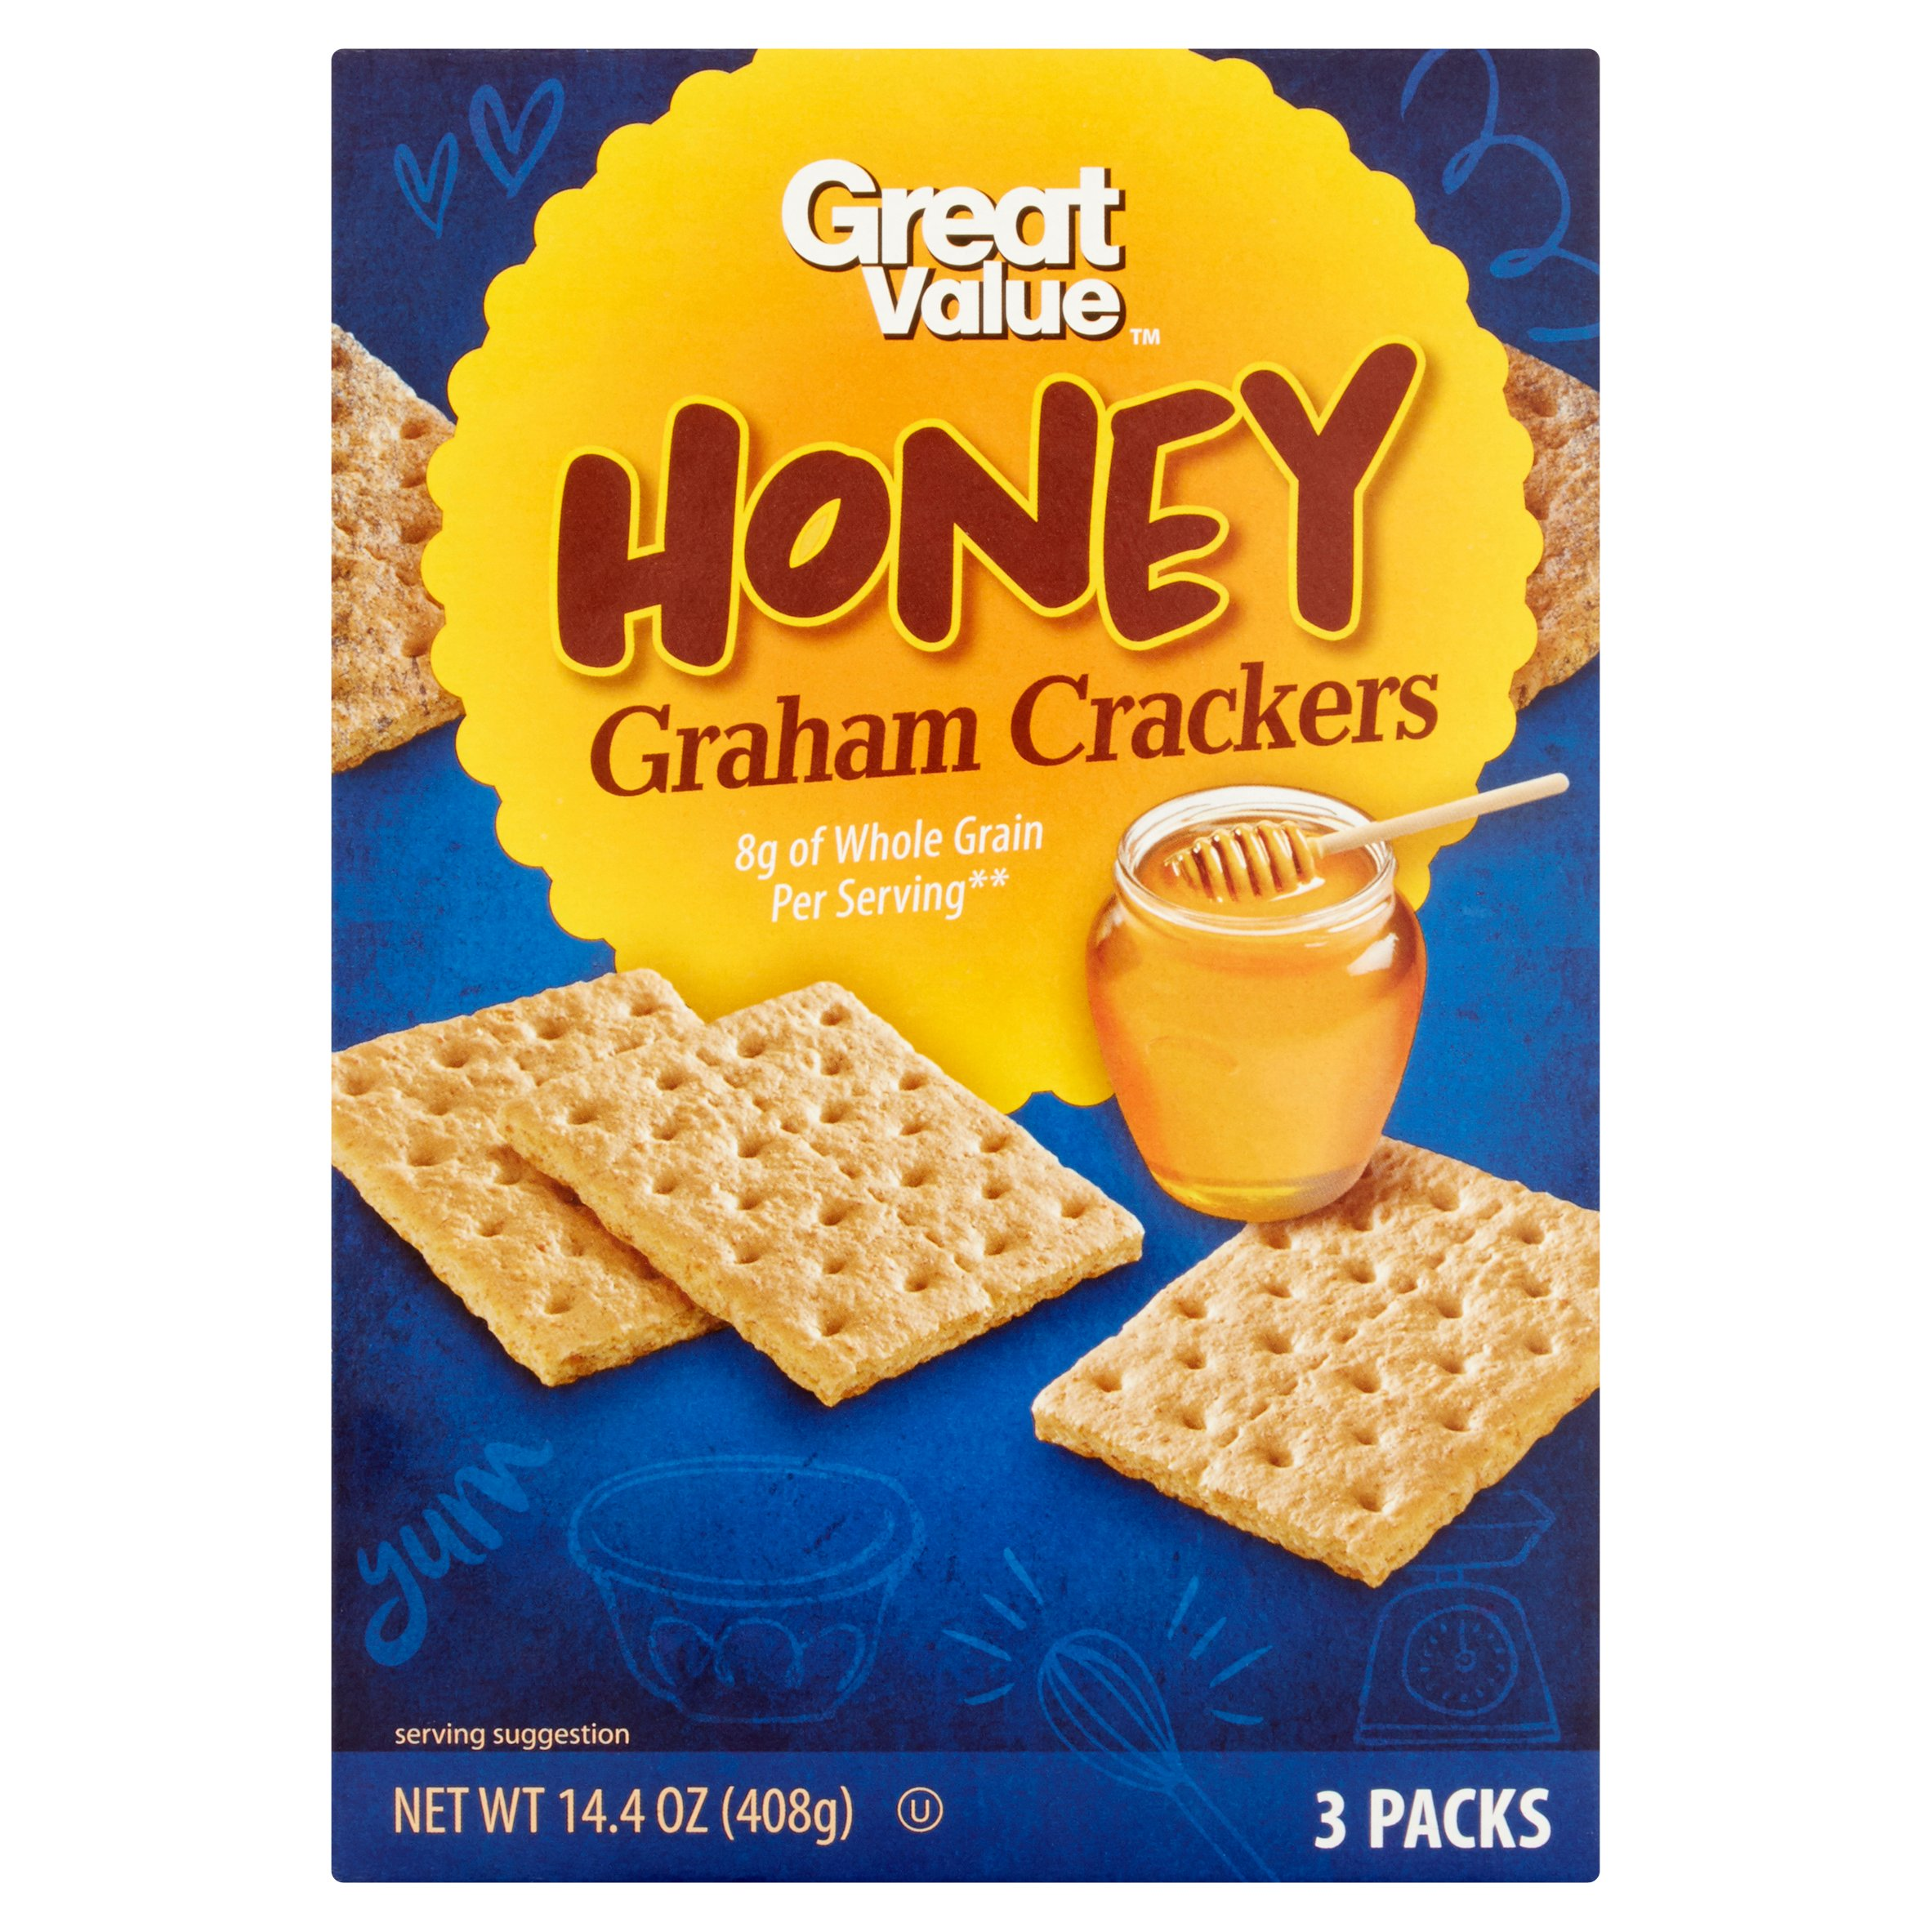 Great Value Honey Graham Crackers, 14.4 oz, 3 Pack by Wal-Mart Stores, Inc.